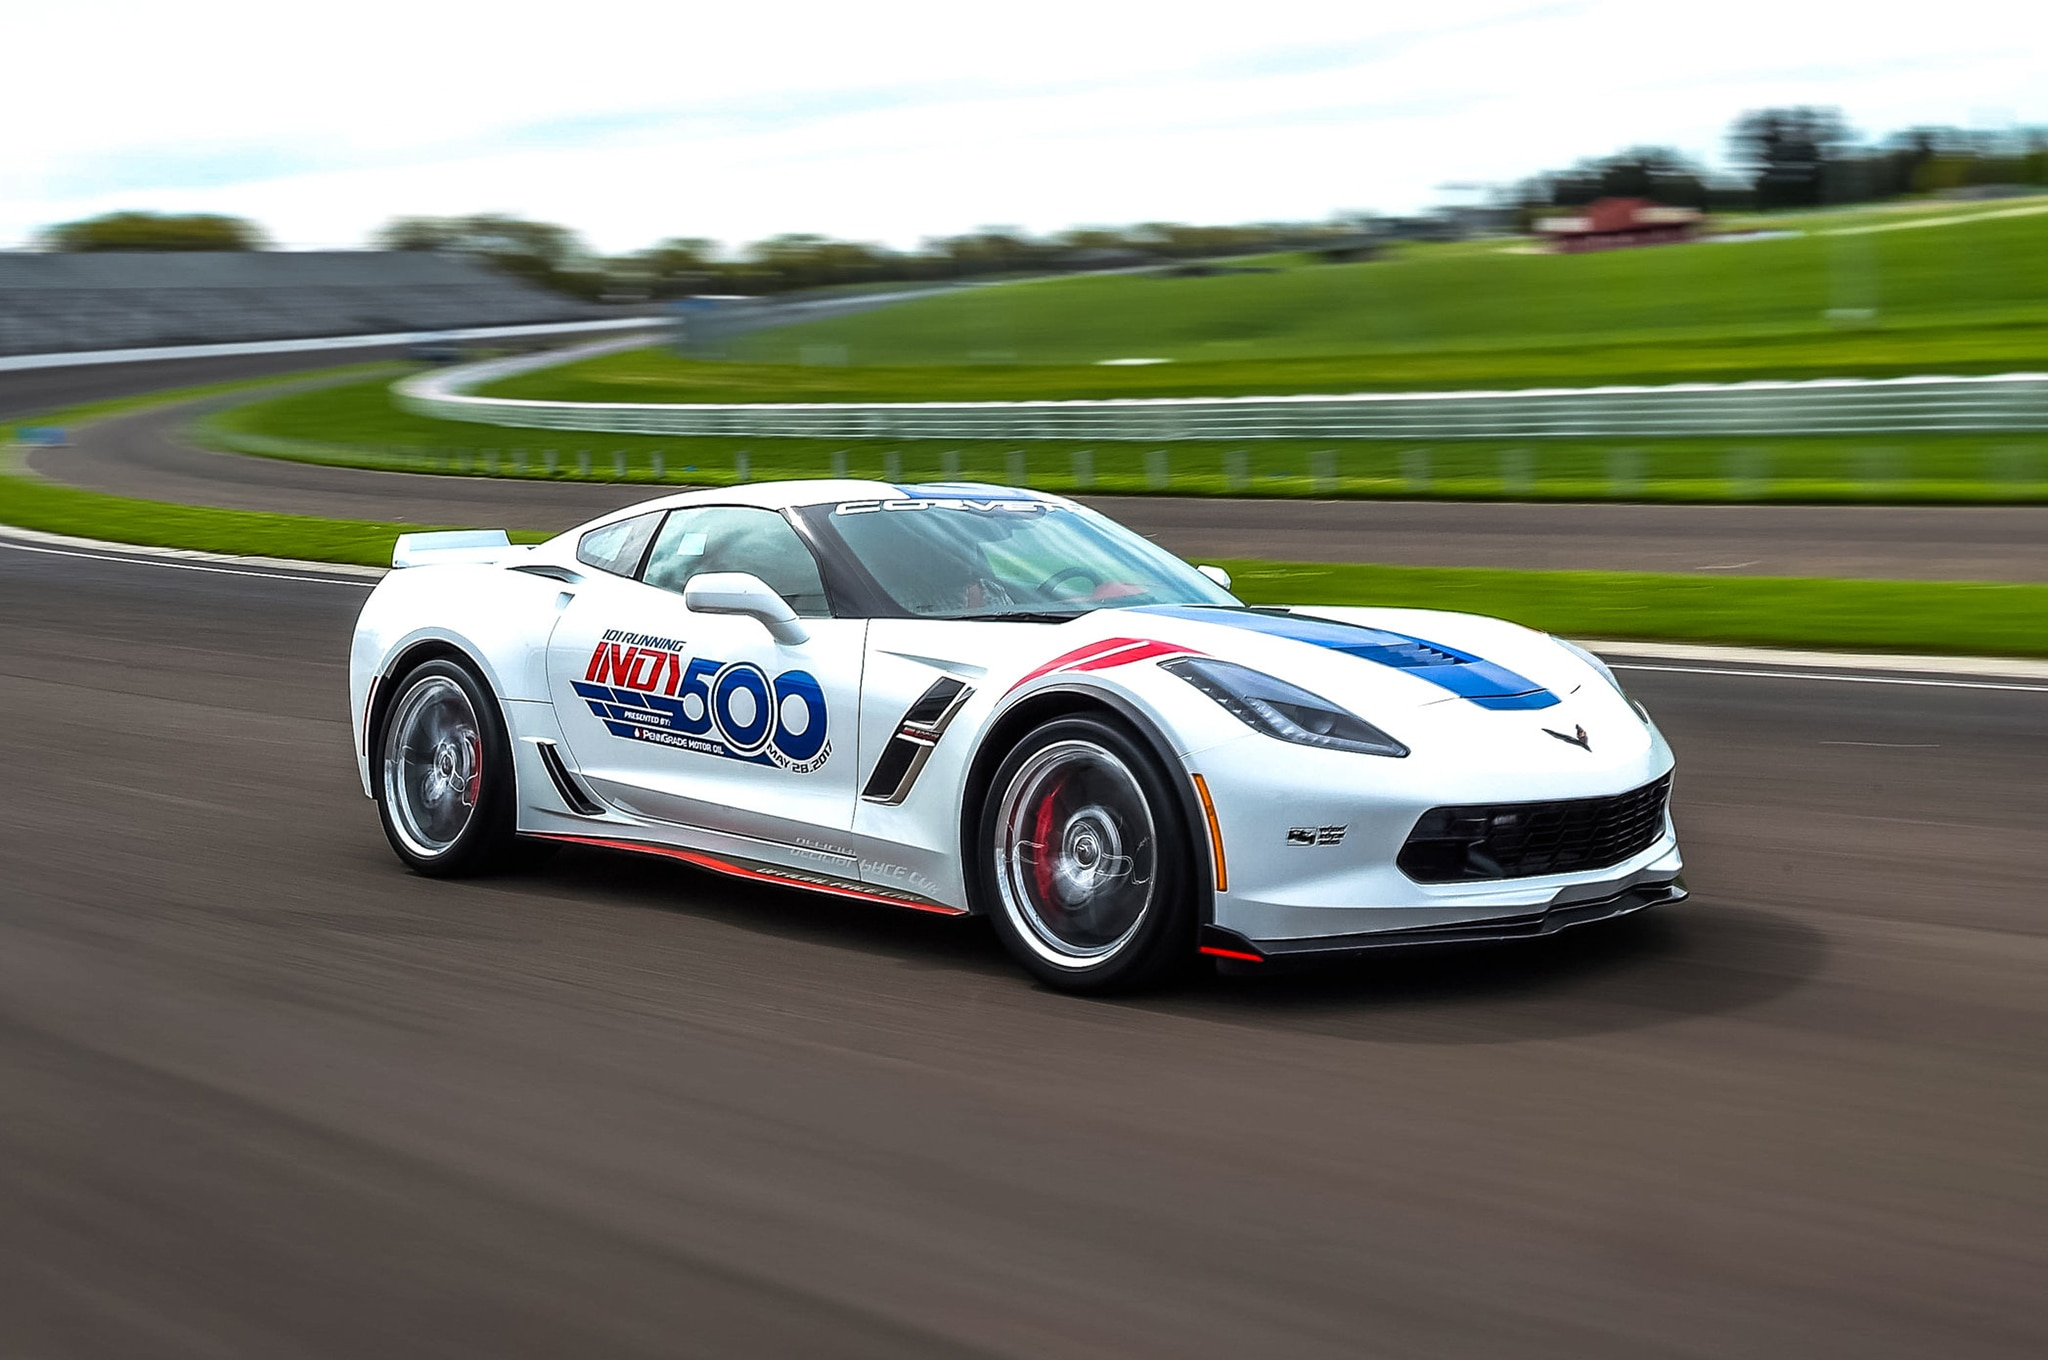 2017 indy 500 to use a chevrolet corvette grand sport as its pace car automobile magazine. Black Bedroom Furniture Sets. Home Design Ideas